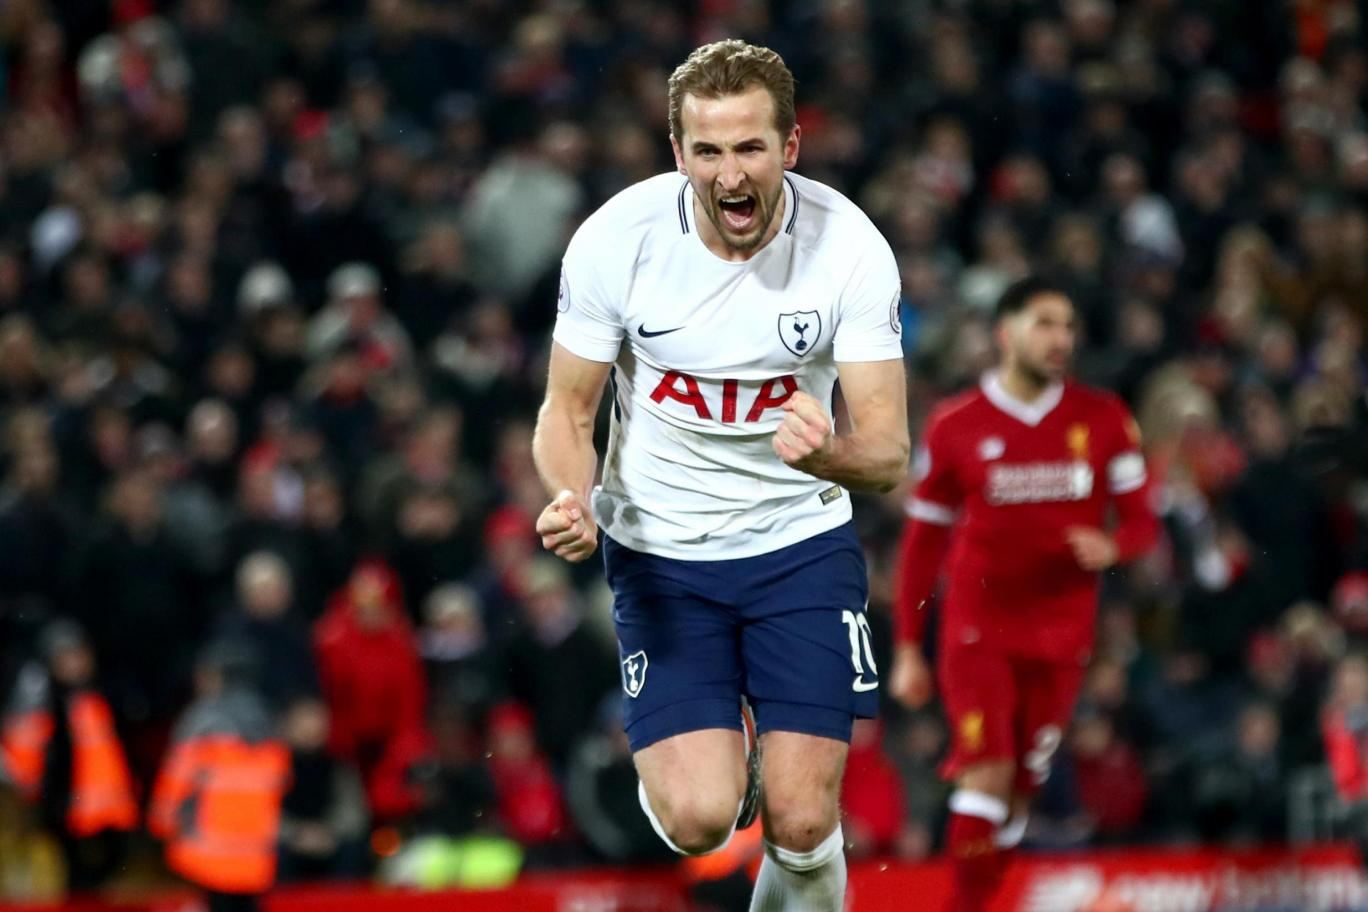 Tottenham striker Harry Kane celebrates after scoring against Liverpool at Anfield. (Getty Images)